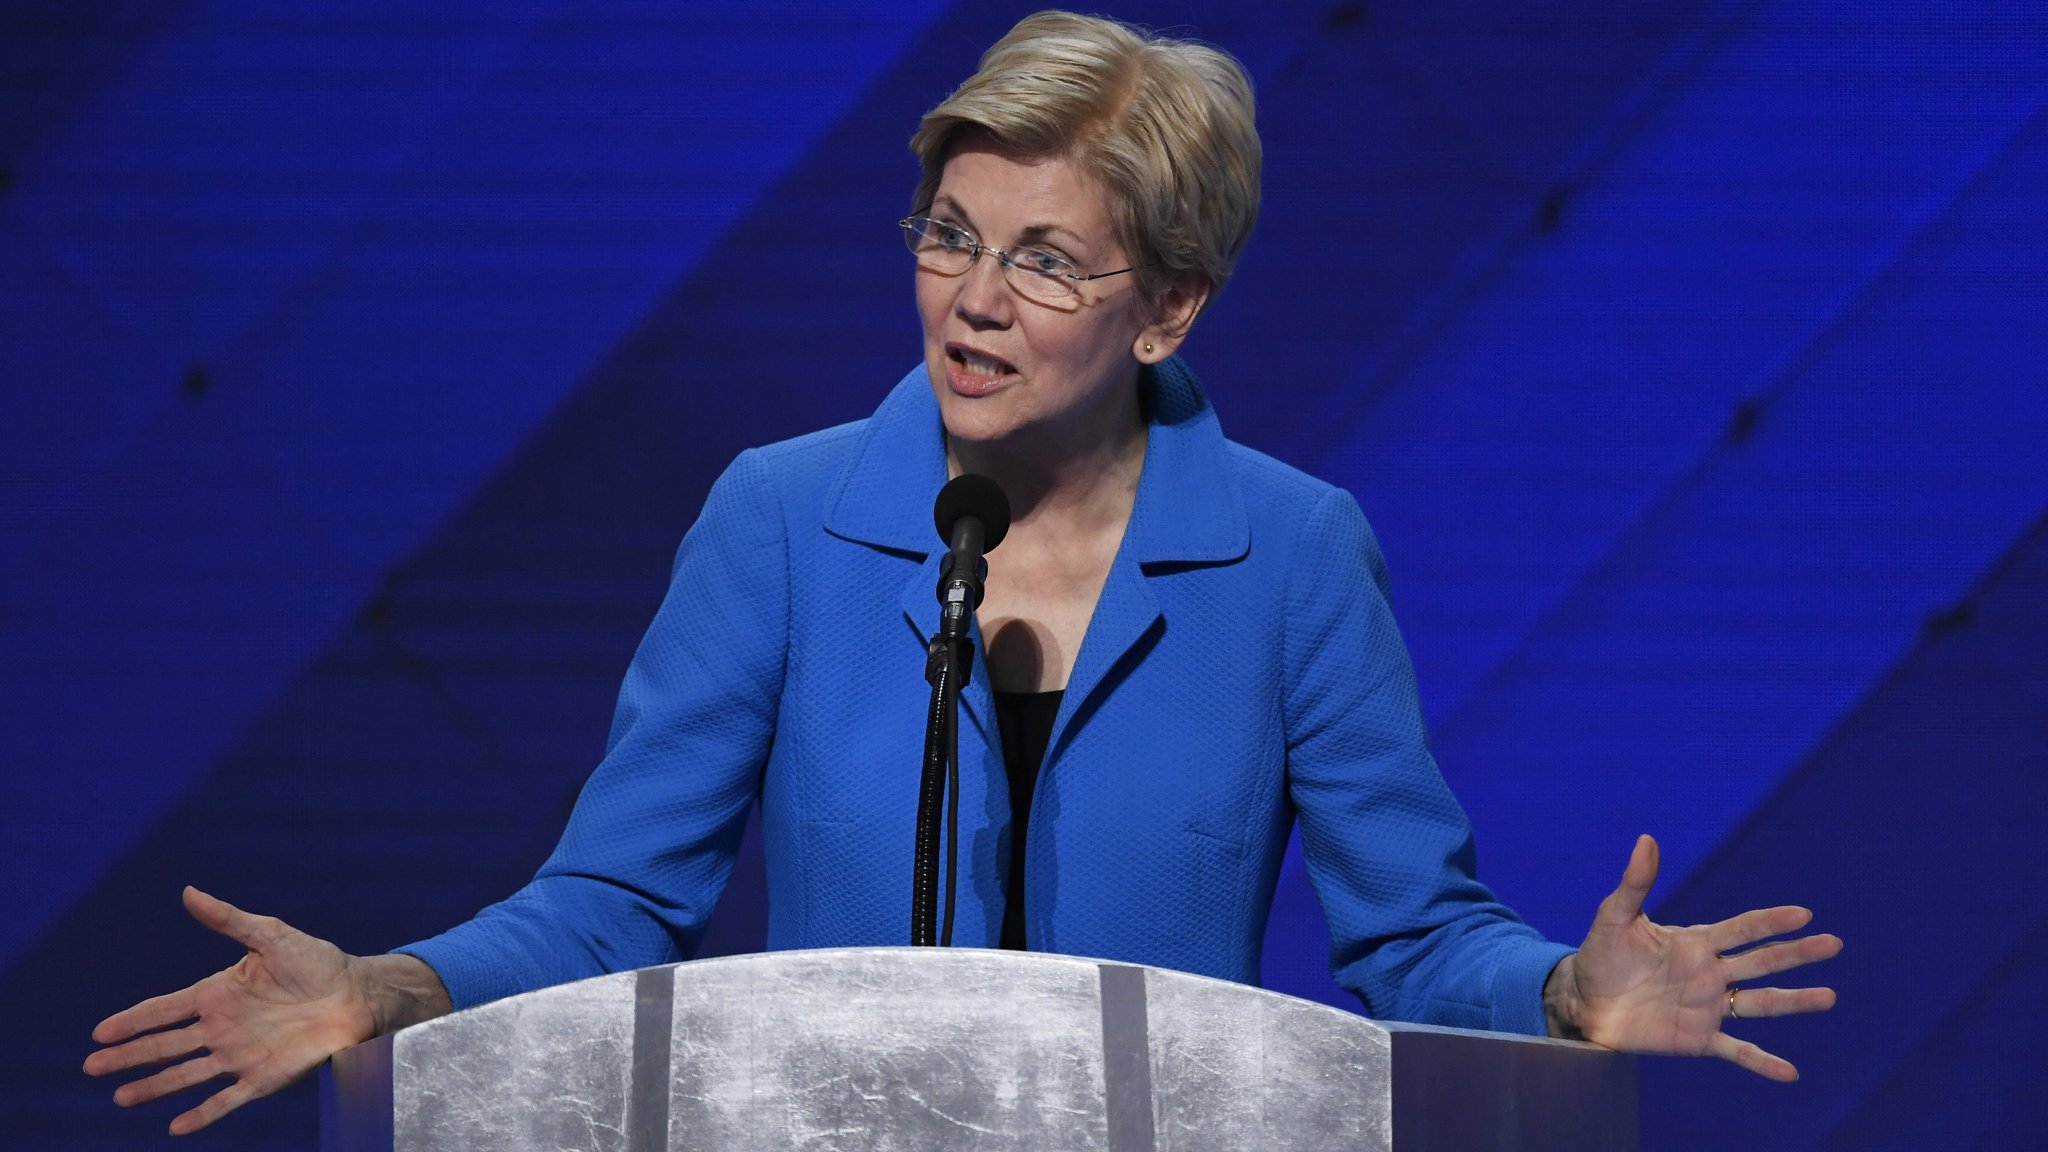 Senator Elizabeth Warren, a Democrat from Massachusetts, speaks during the Democratic National Convention (DNC) in Philadelphia, Pennsylvania, U.S., on Thursday, July 28, 2016. Division among Democrats has been overcome through speeches from two presidents, another first lady and a vice-president, who raised the stakes for their candidate by warning that her opponent posed an unprecedented threat to American diplomacy. Photographer: David Paul Morris/Bloomberg